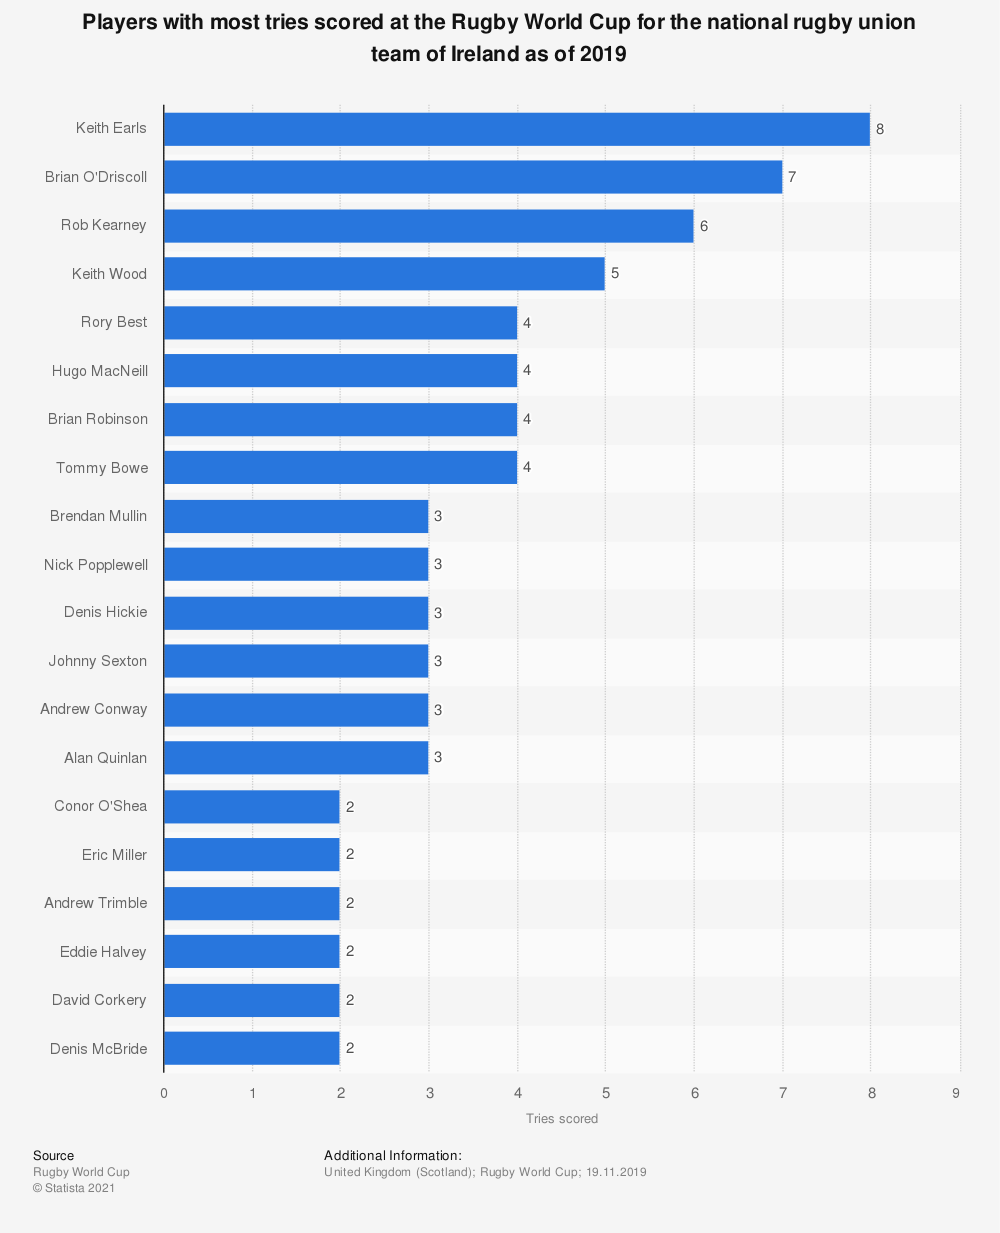 Statistic: Players with most tries scored at the Rugby World Cup for the national rugby union team of Ireland as of 2019 | Statista